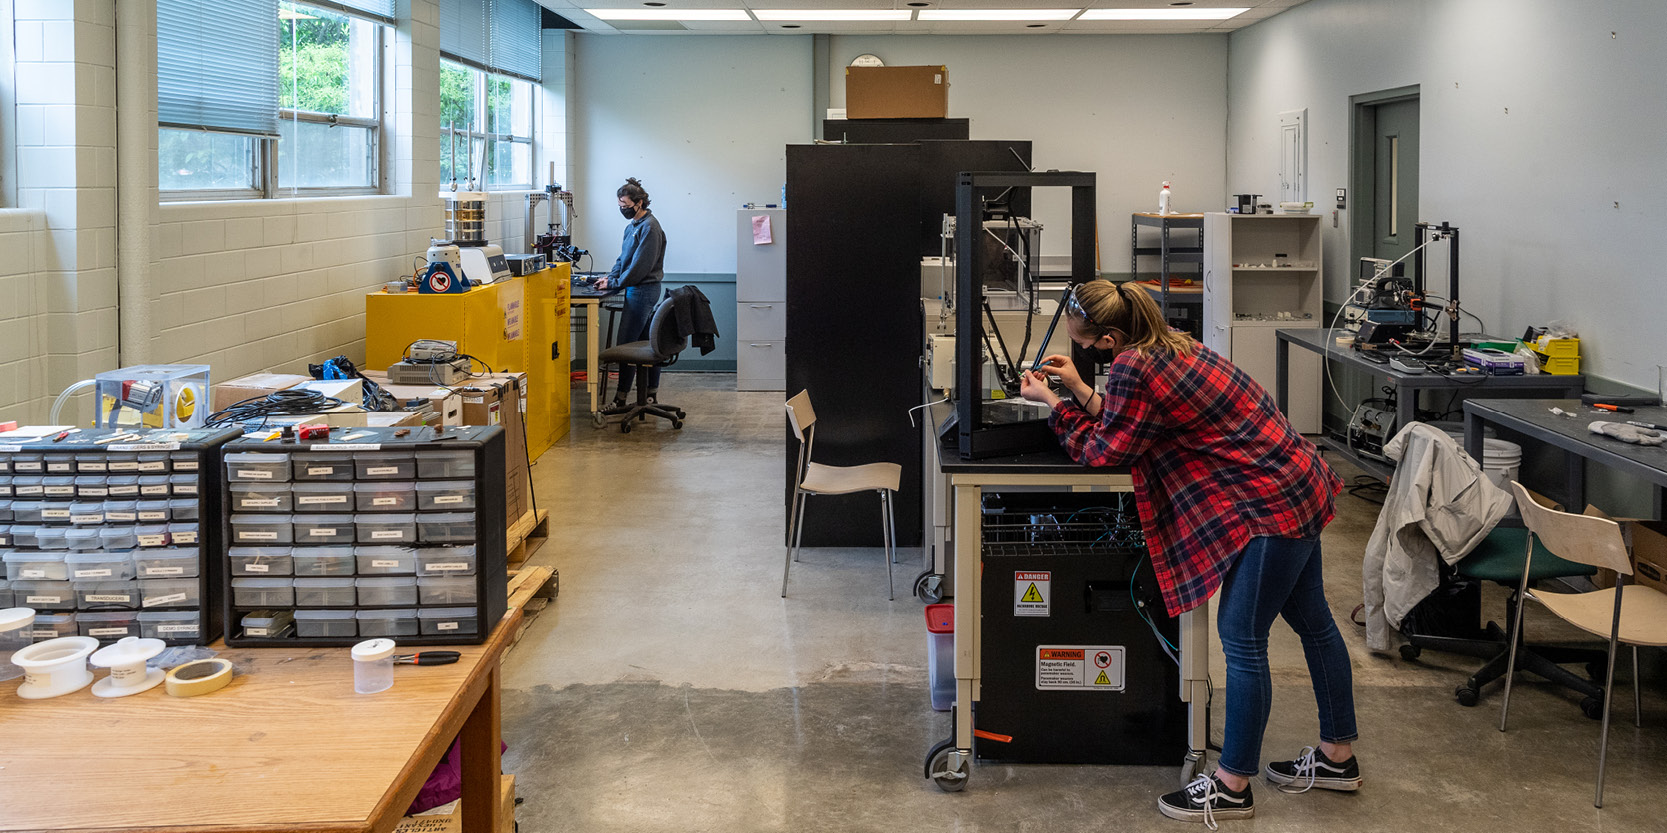 Several years ago, Ray W. Herrick Laboratories converted 17 of the 31 offices in the original Herrick building into research space, providing 3,341 additional square feet for mechanical engineering projects.